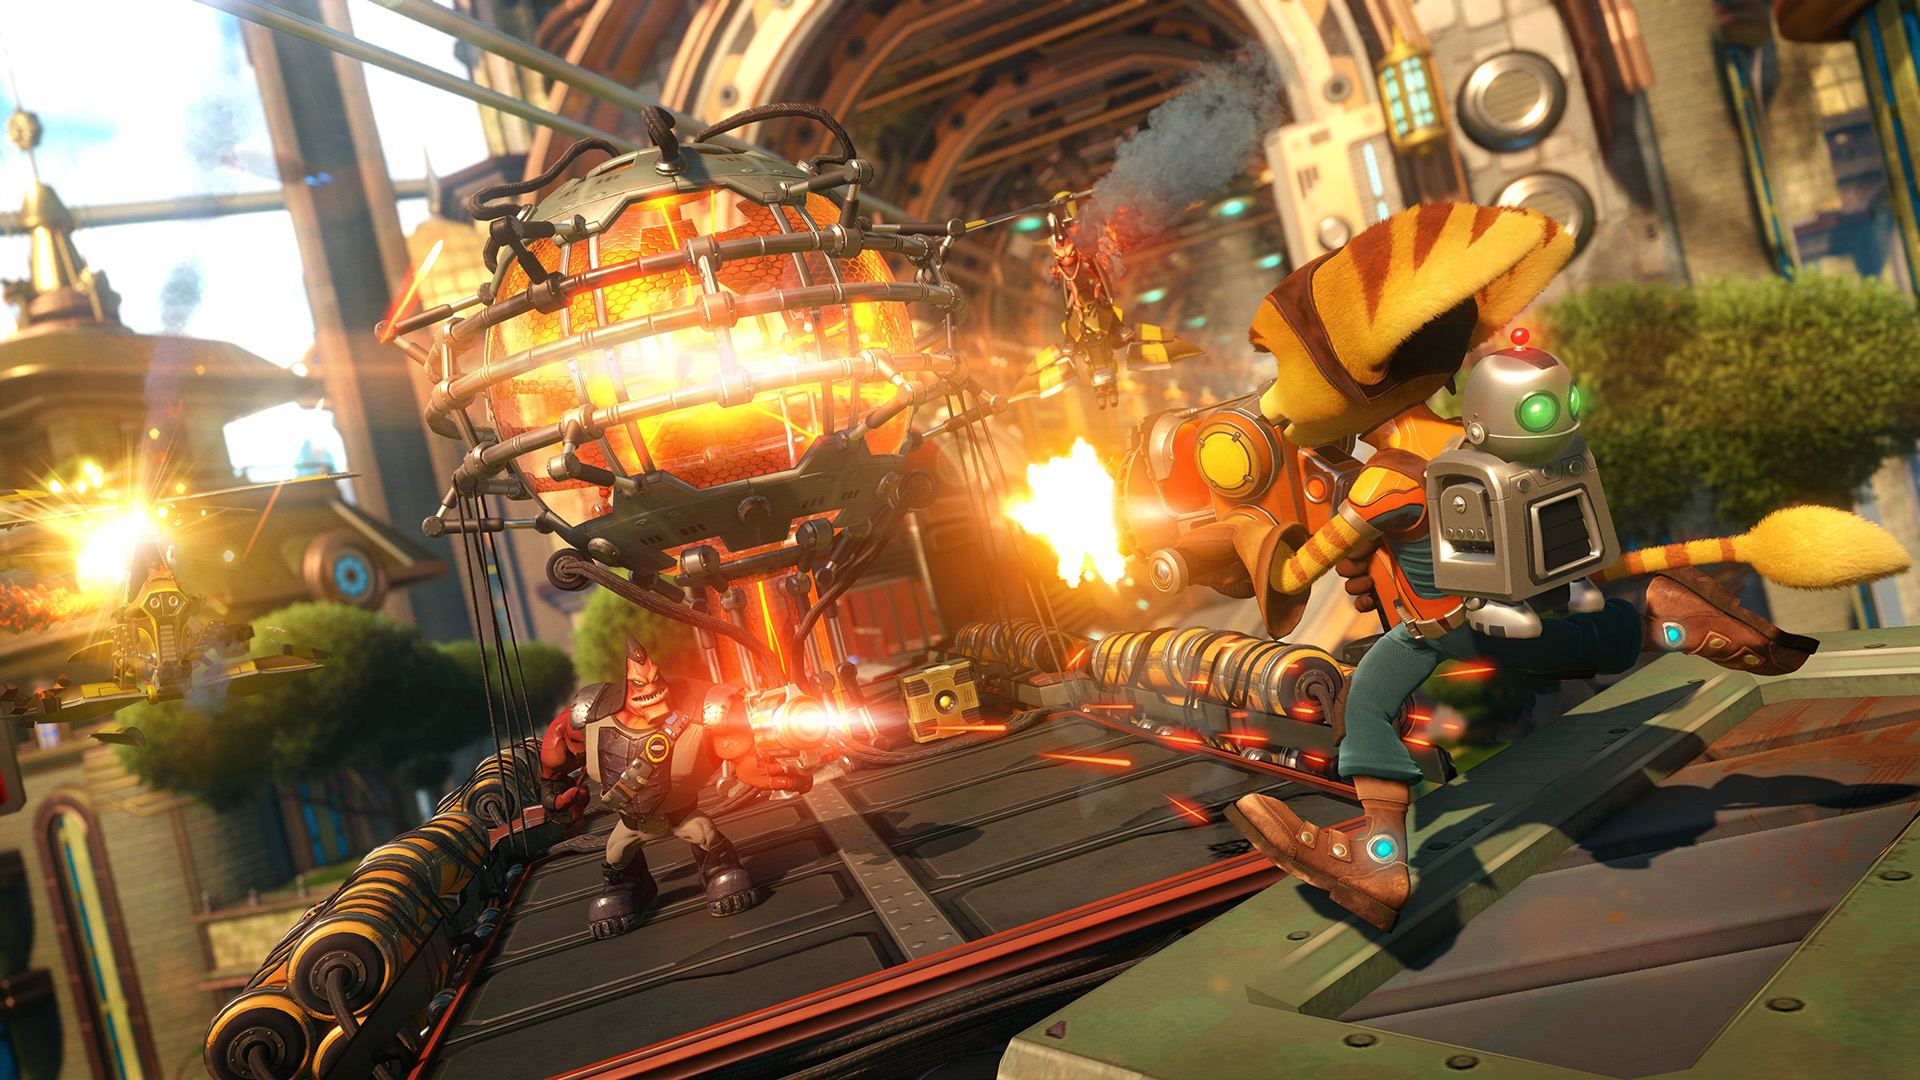 Ratchet-and-Clank-11.jpg